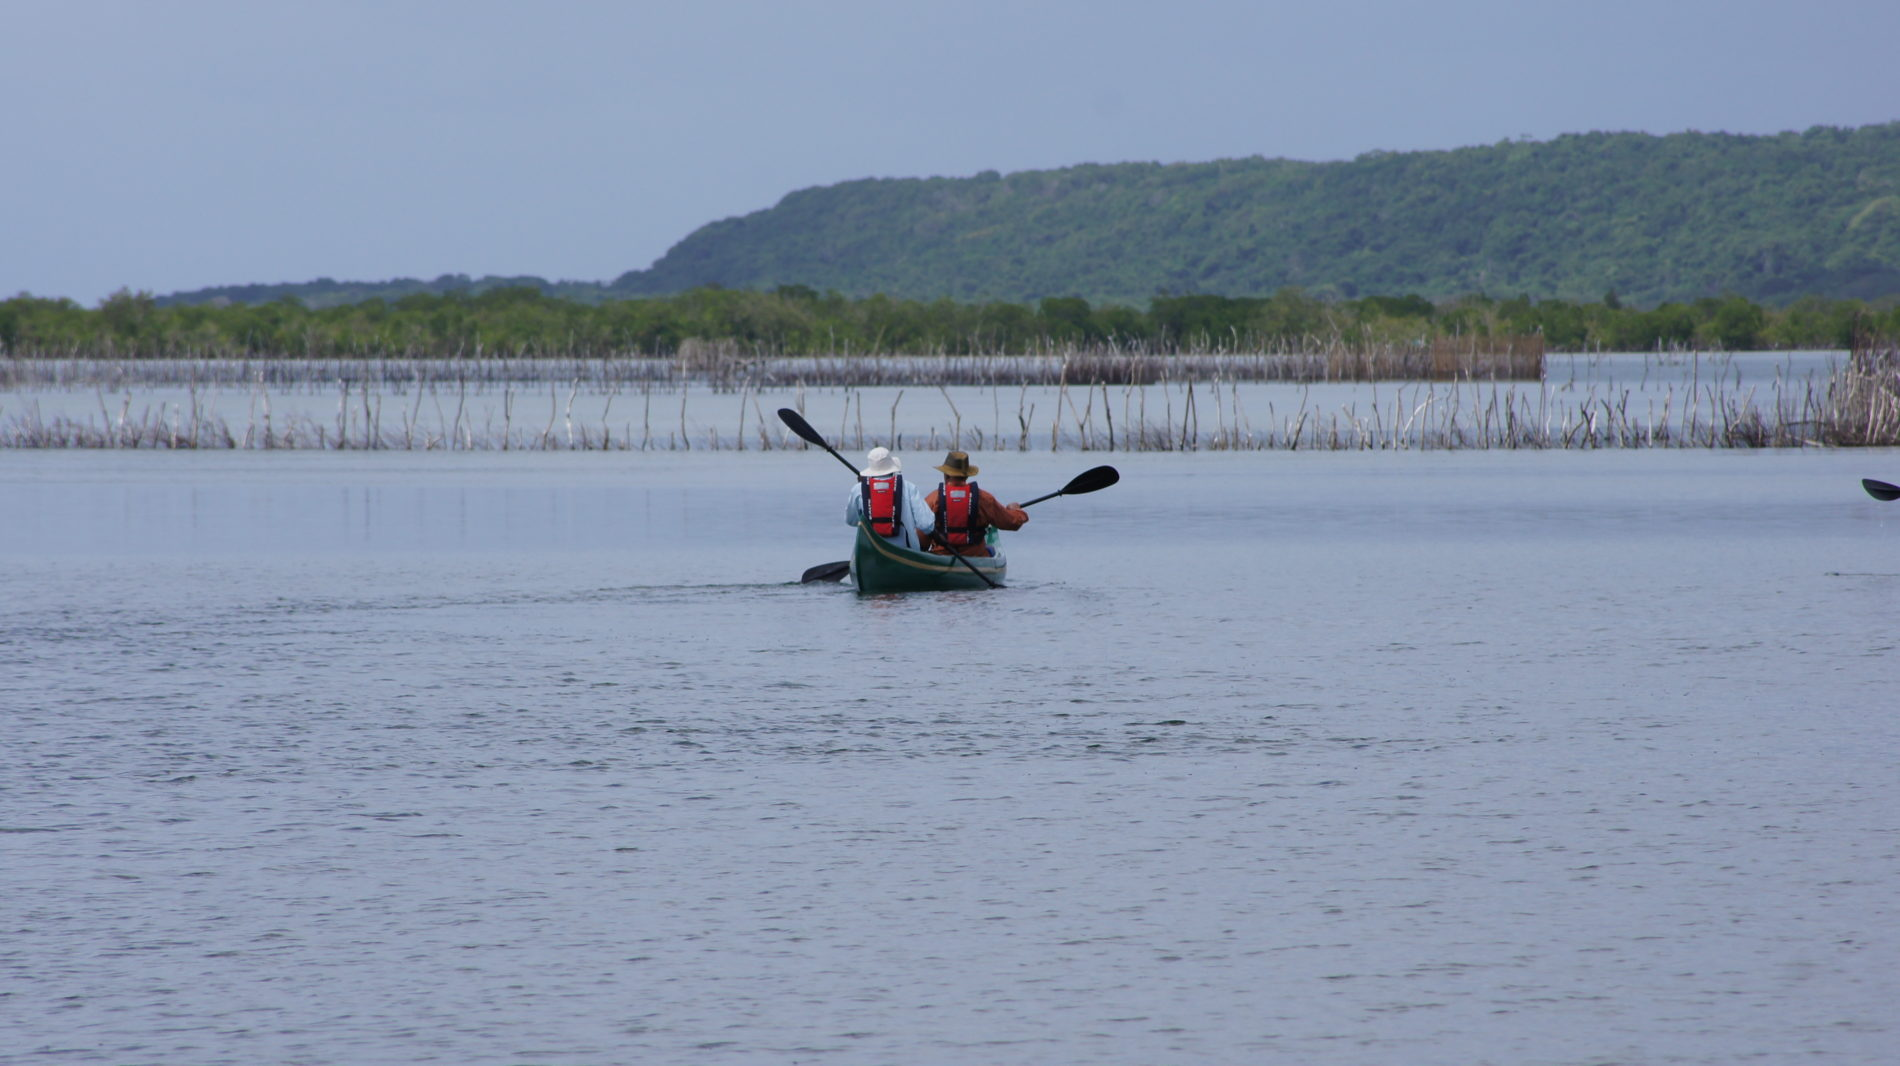 Activities in Kosi Bay - Guided canoe safaris around Kosi bay Mouth and estuary